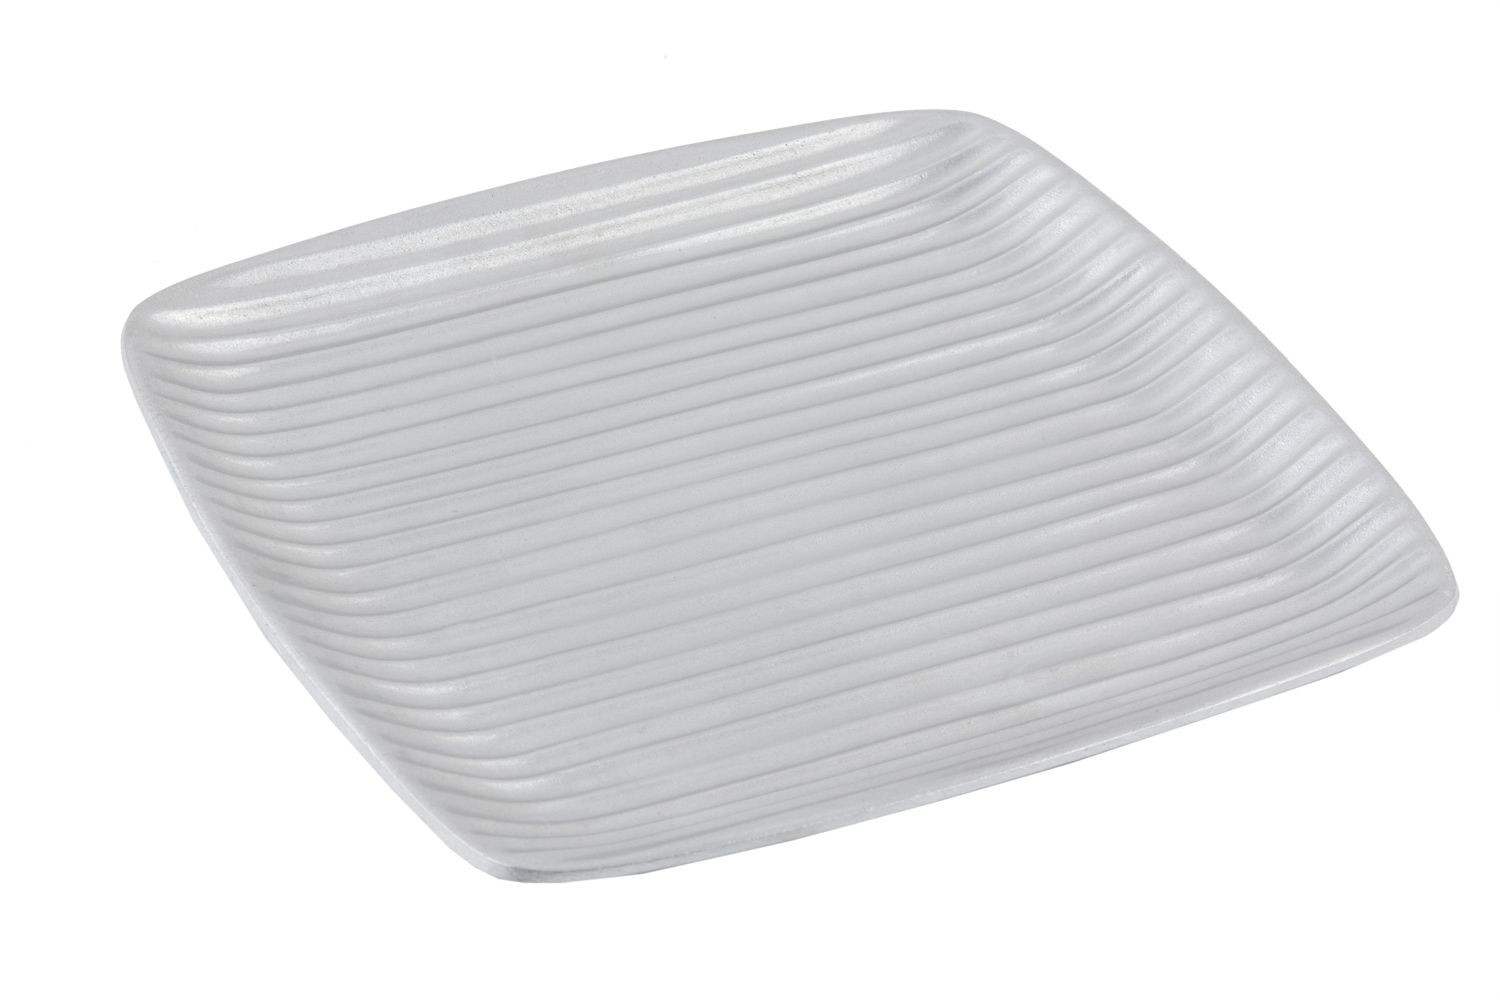 "Bon Chef 9919P Ribbed Square Platter, Pewter Glo 12 1/2"" x 12 1/2"", Set of 2"